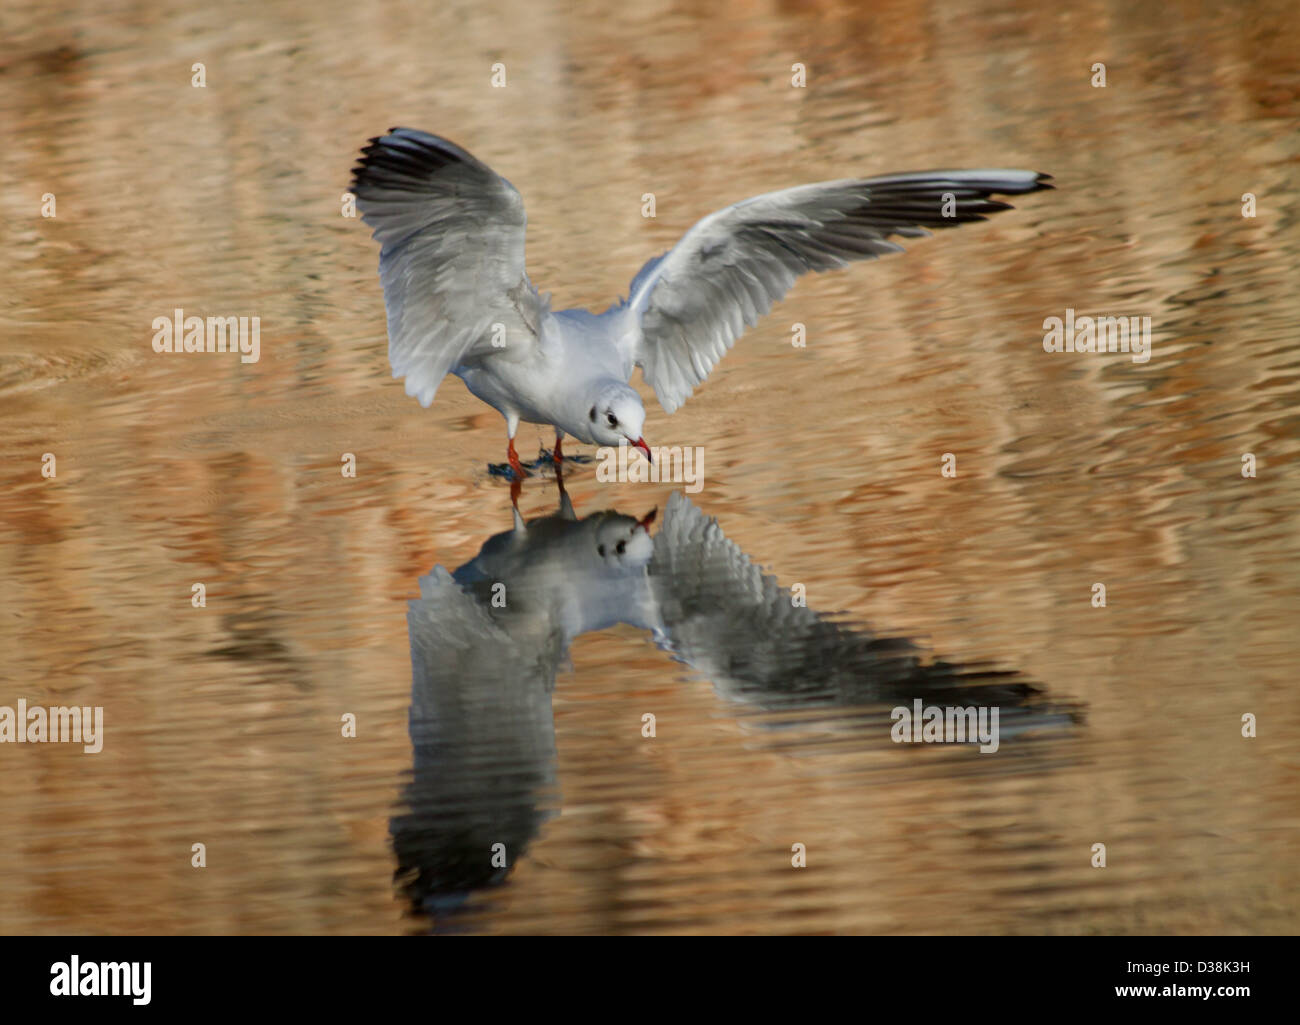 Black-headed Gull and its reflection as it lands on water at the Bishop's Palace Moat in Wells, Somerset Stock Photo